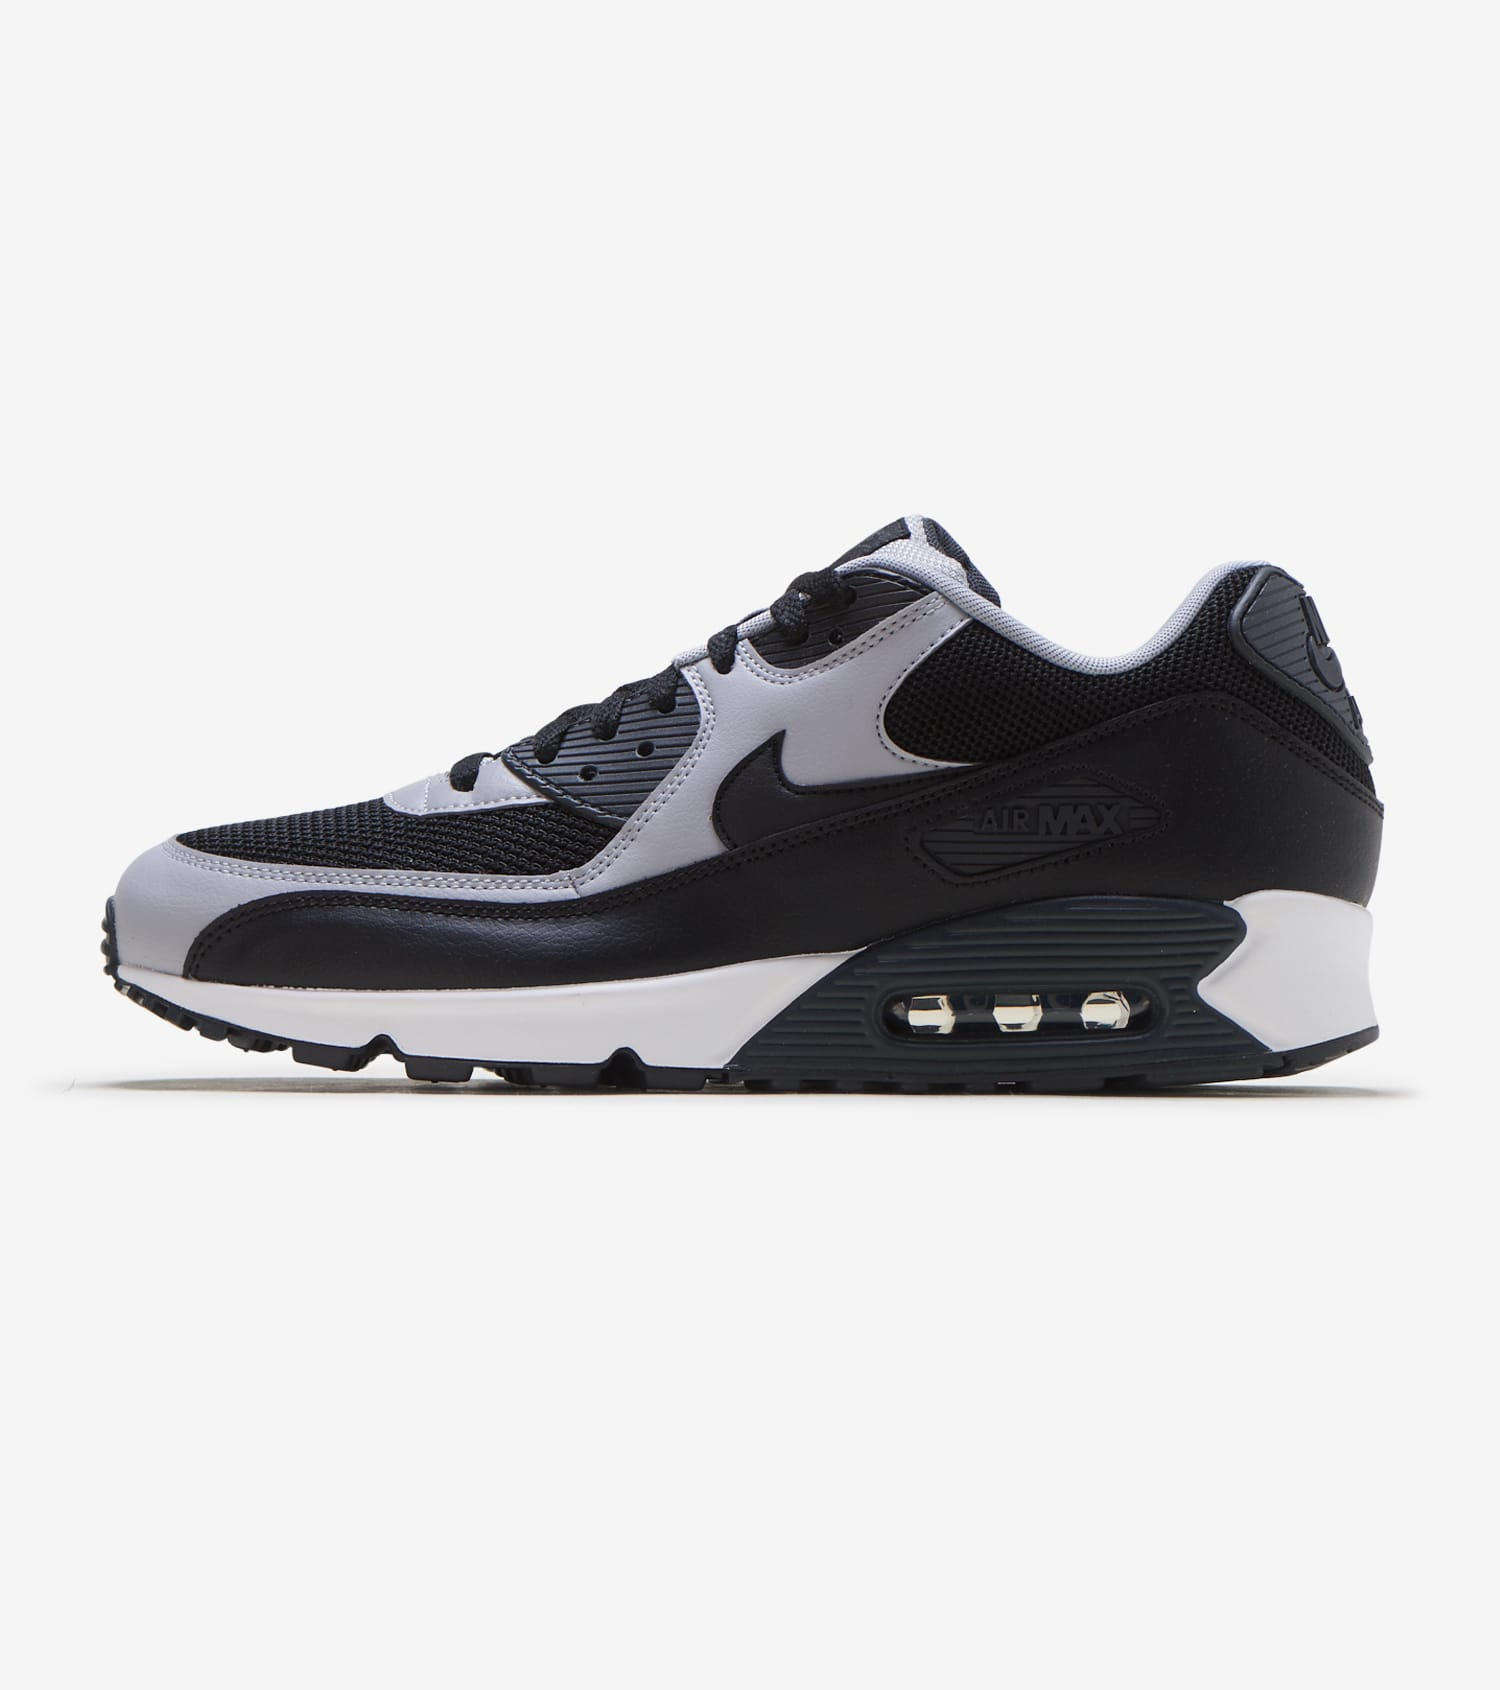 new product 0ac75 4343f Air Max 90 Essential